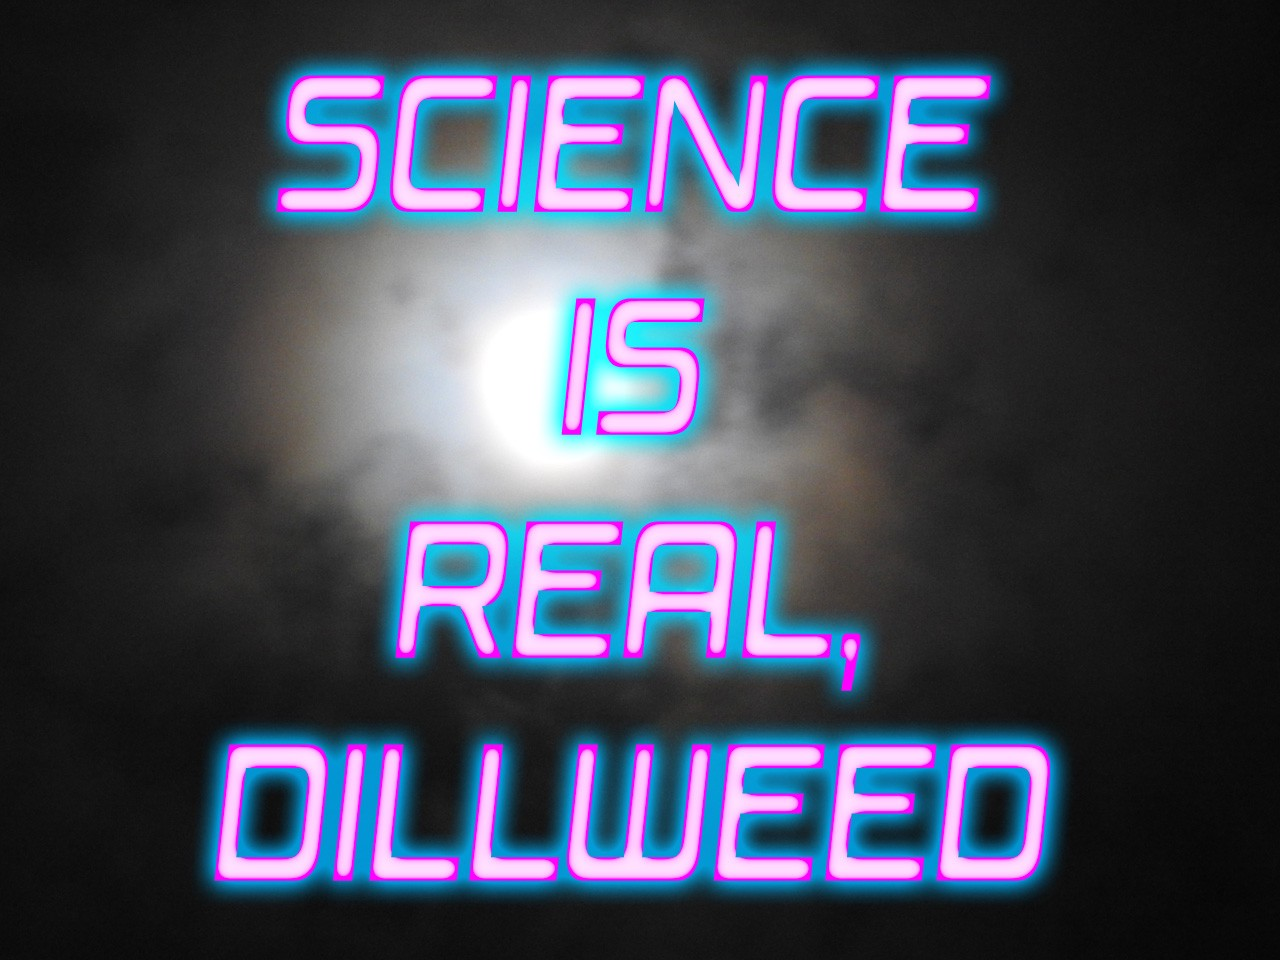 """""""Science is Real, Dillweed"""" Neon Sign against foggy night"""